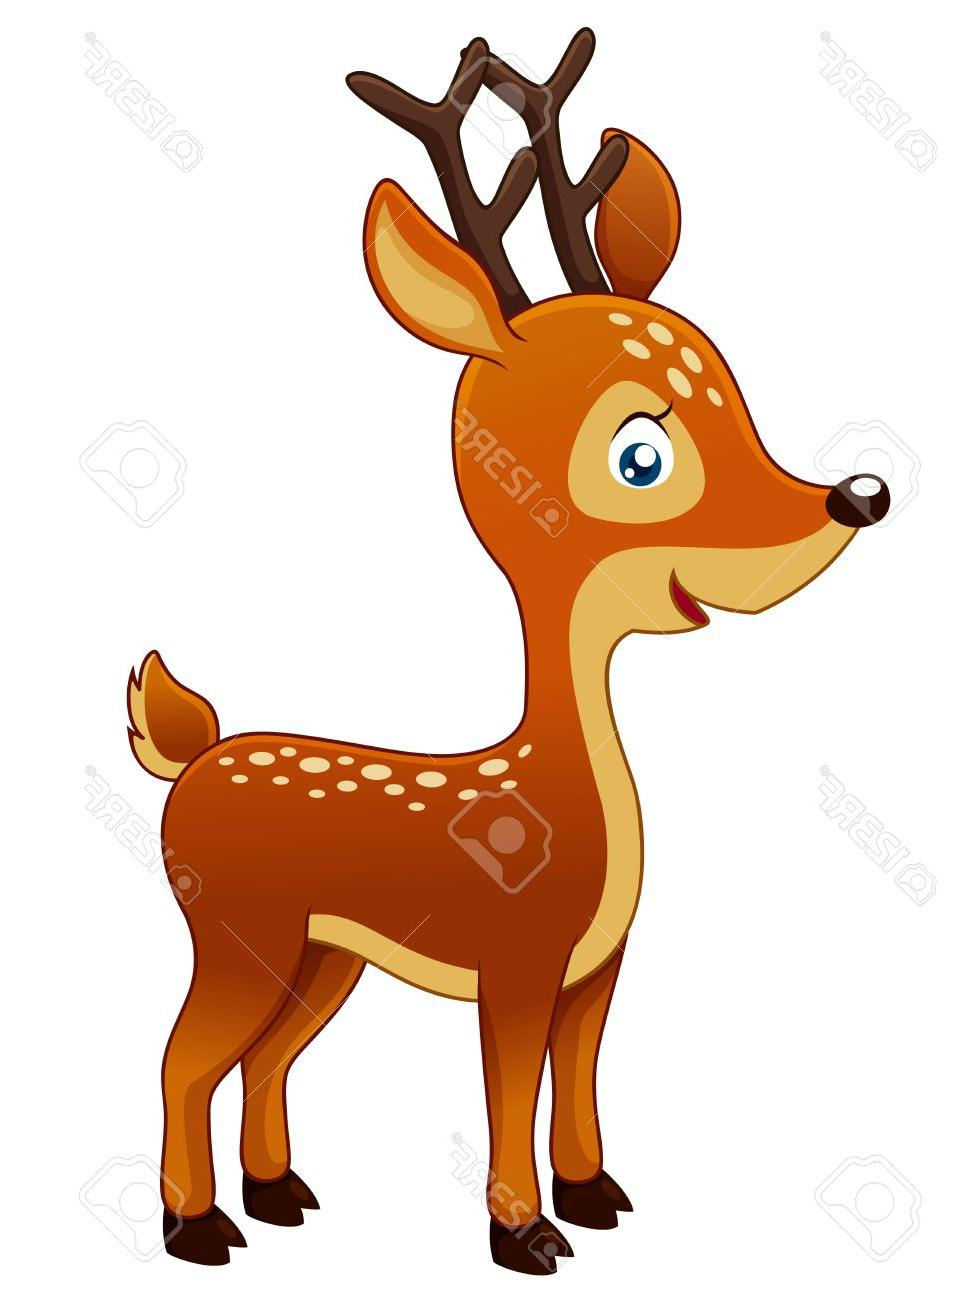 975x1300 Top Cute Cartoon Deer Drawings Vector Library Free Vector Art